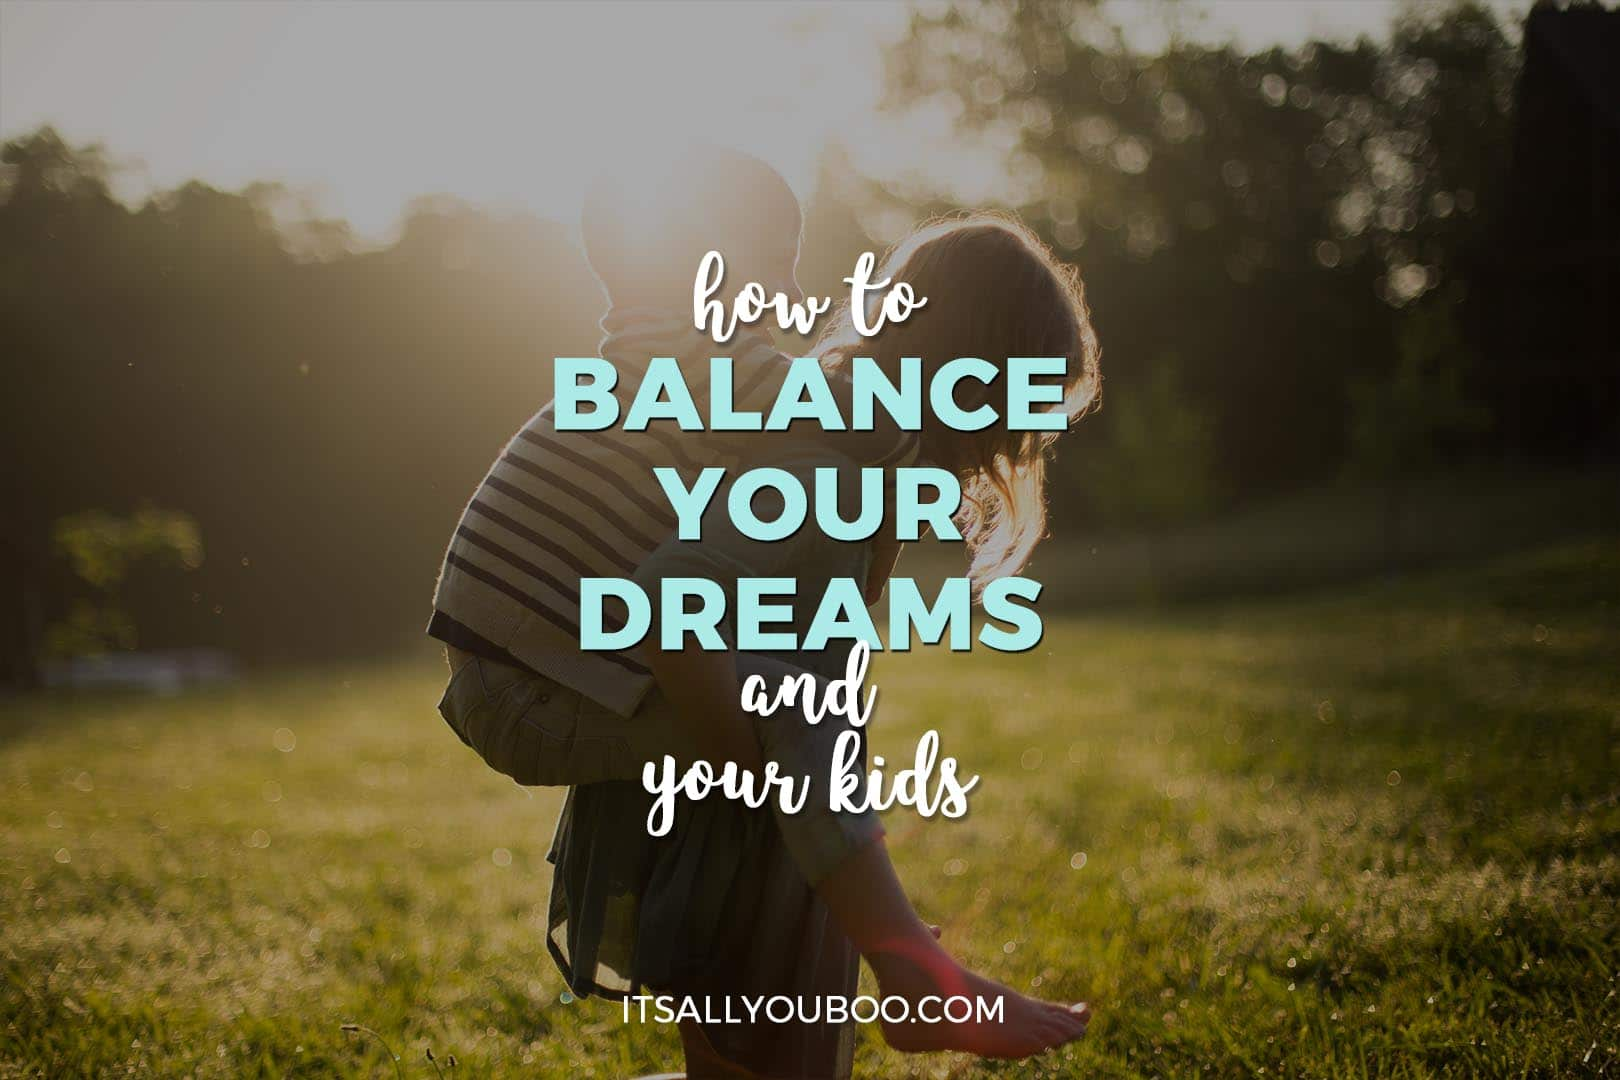 How to Balance Your Dreams and Your Kids